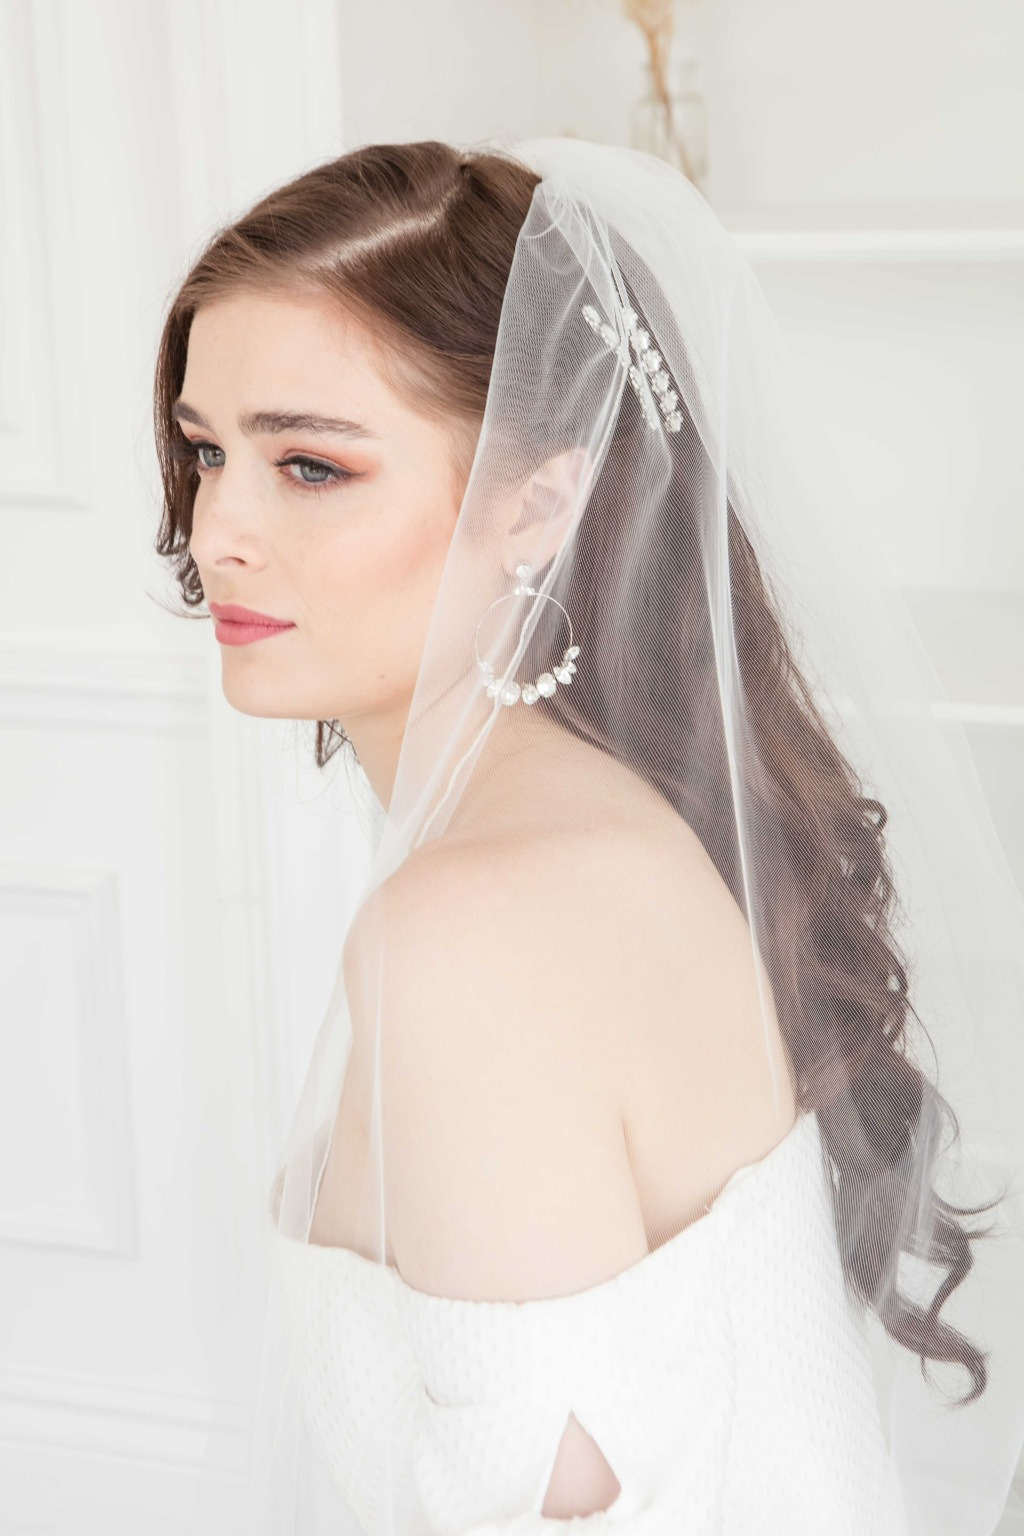 The soft wedding veil and bridal accessories are all from the 2020 collection. See more on Laura Jayne's website!